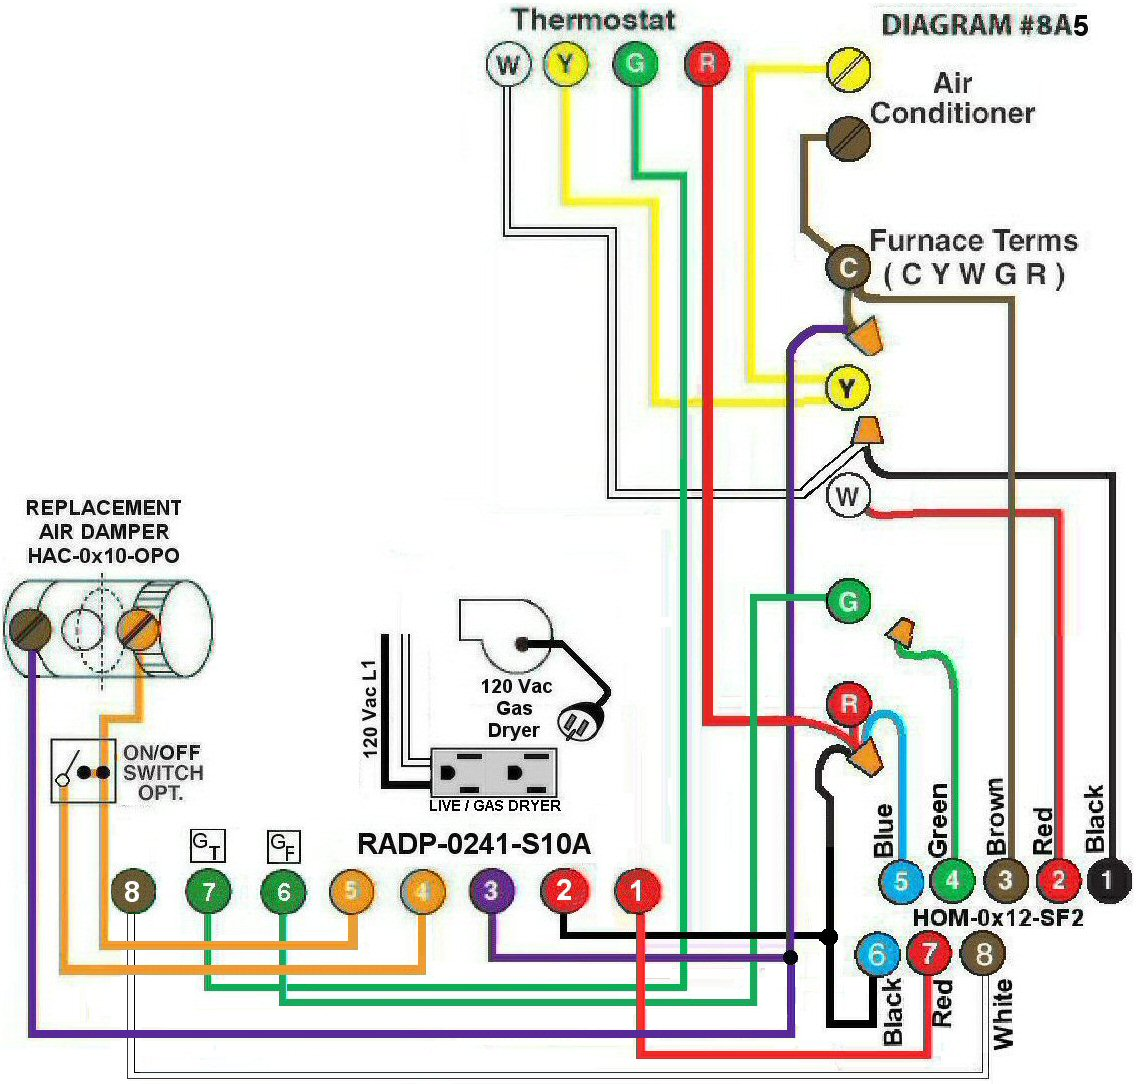 hight resolution of wiring diagram for a gas fireplace blower wiring diagram ame wiring diagram for a gas fireplace blower on wood stove blower wiring